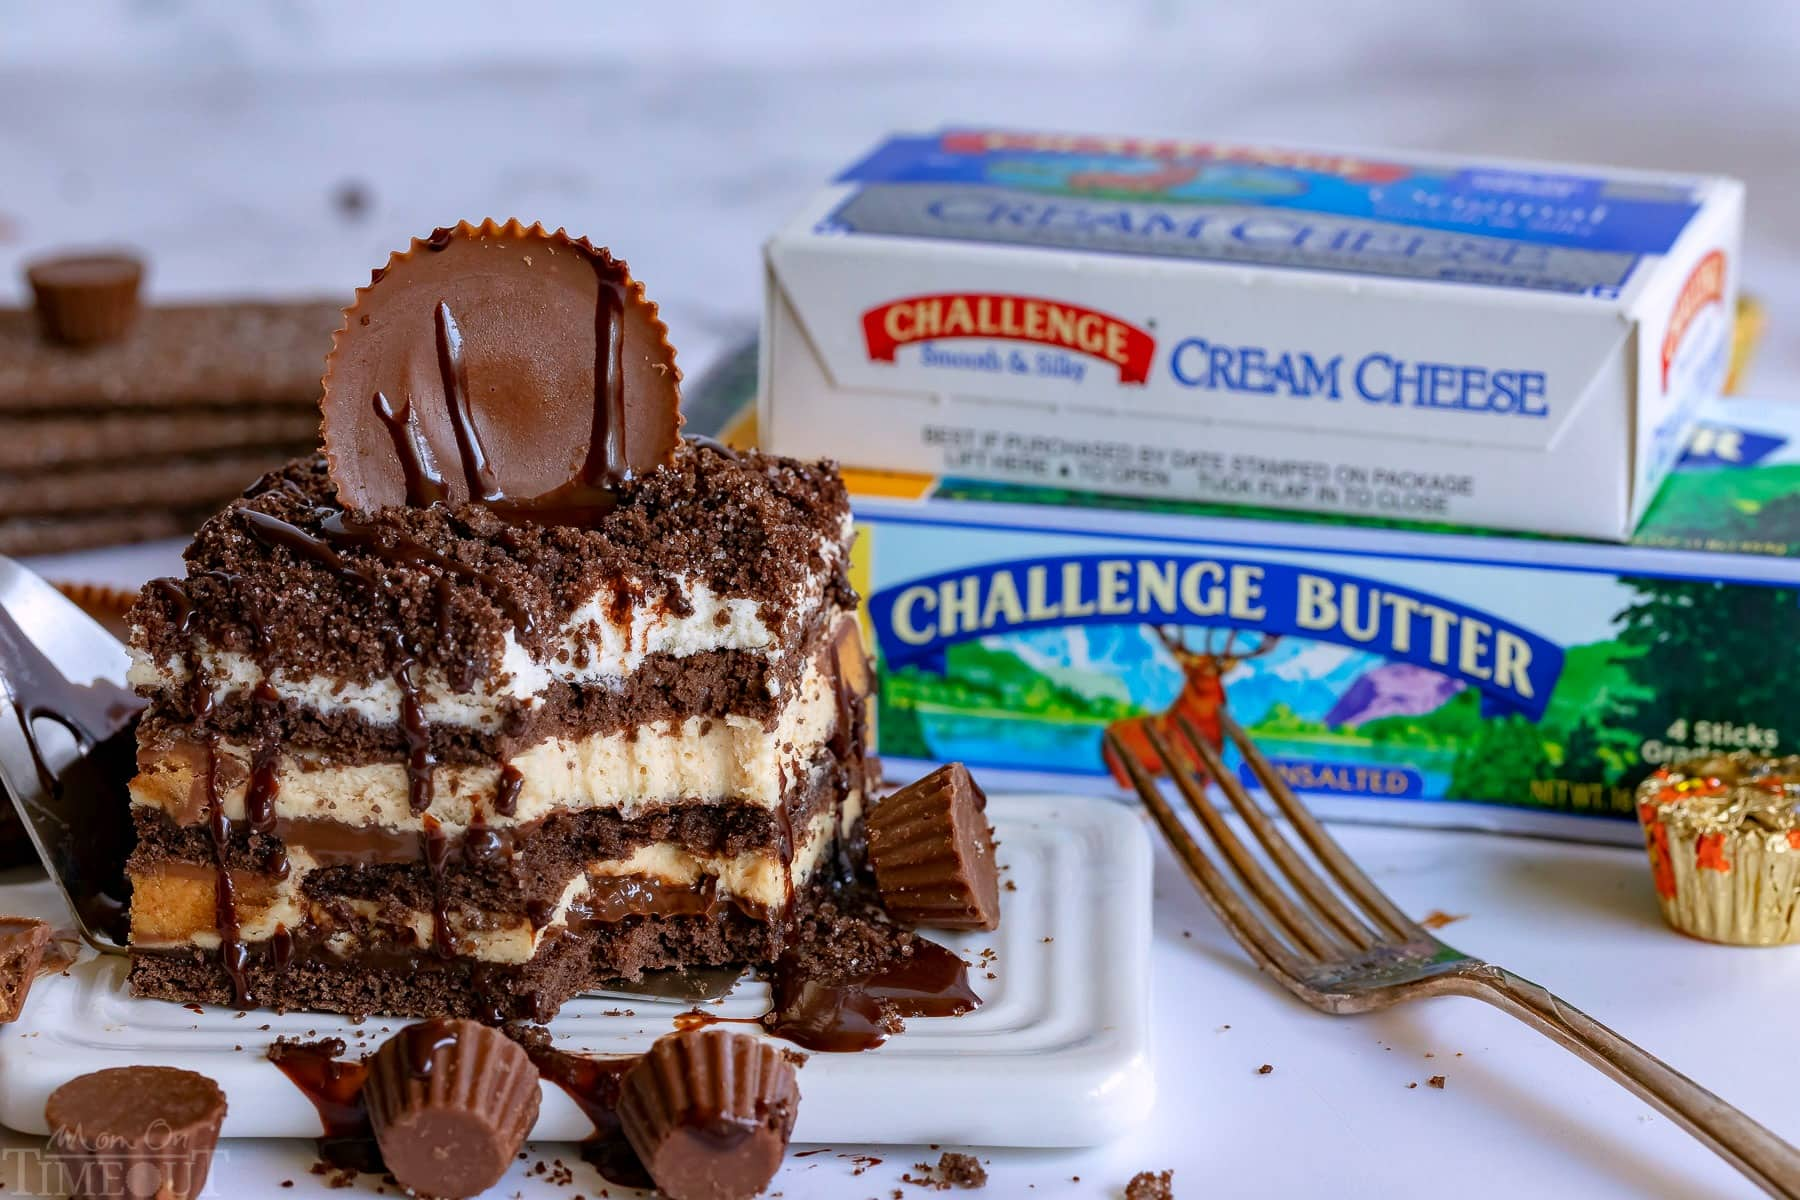 """icebox-cake-peanut-butter-challenge """"ancho ="""" 738 """"altura ="""" 492"""